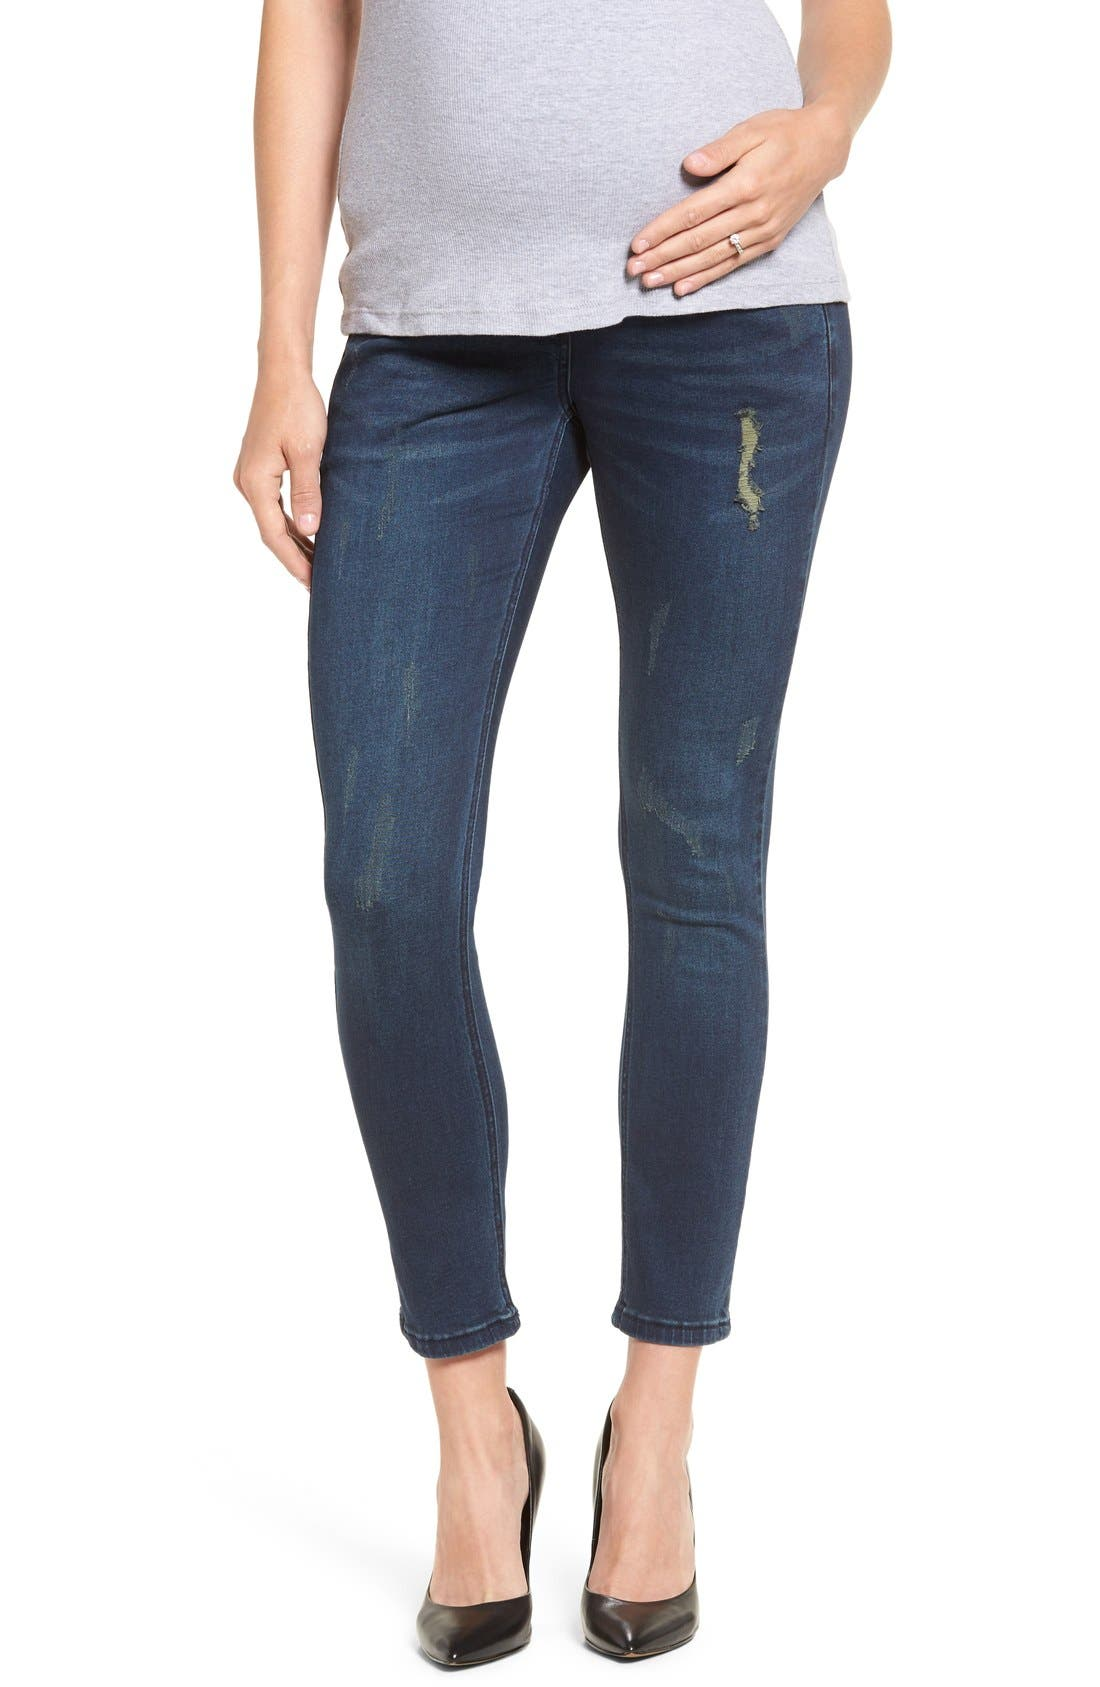 The Urban Ma Distressed Skinny Maternity Jeans